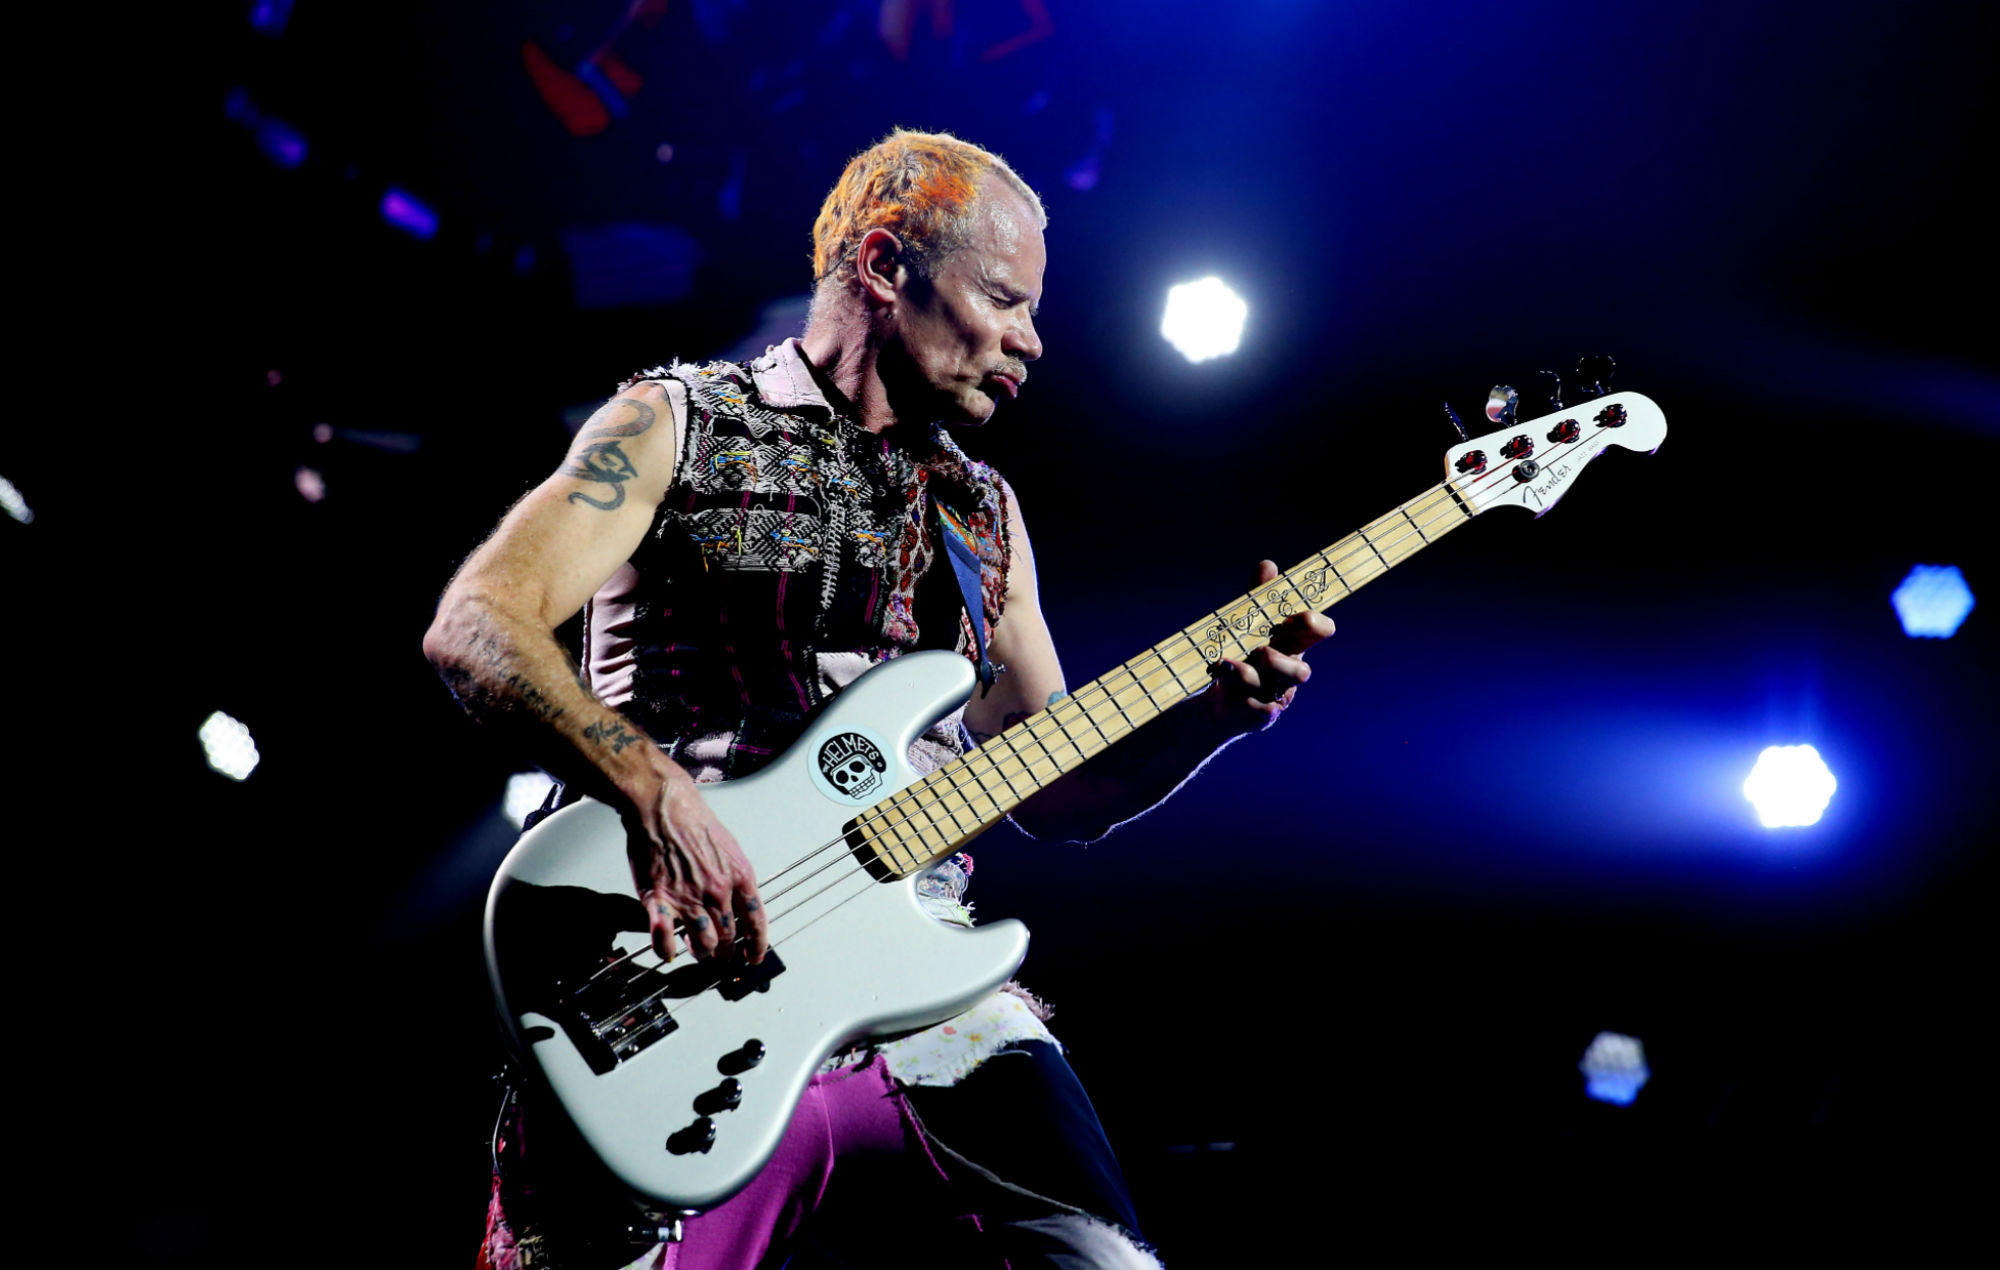 Flea; Red Hot Chili Peppers